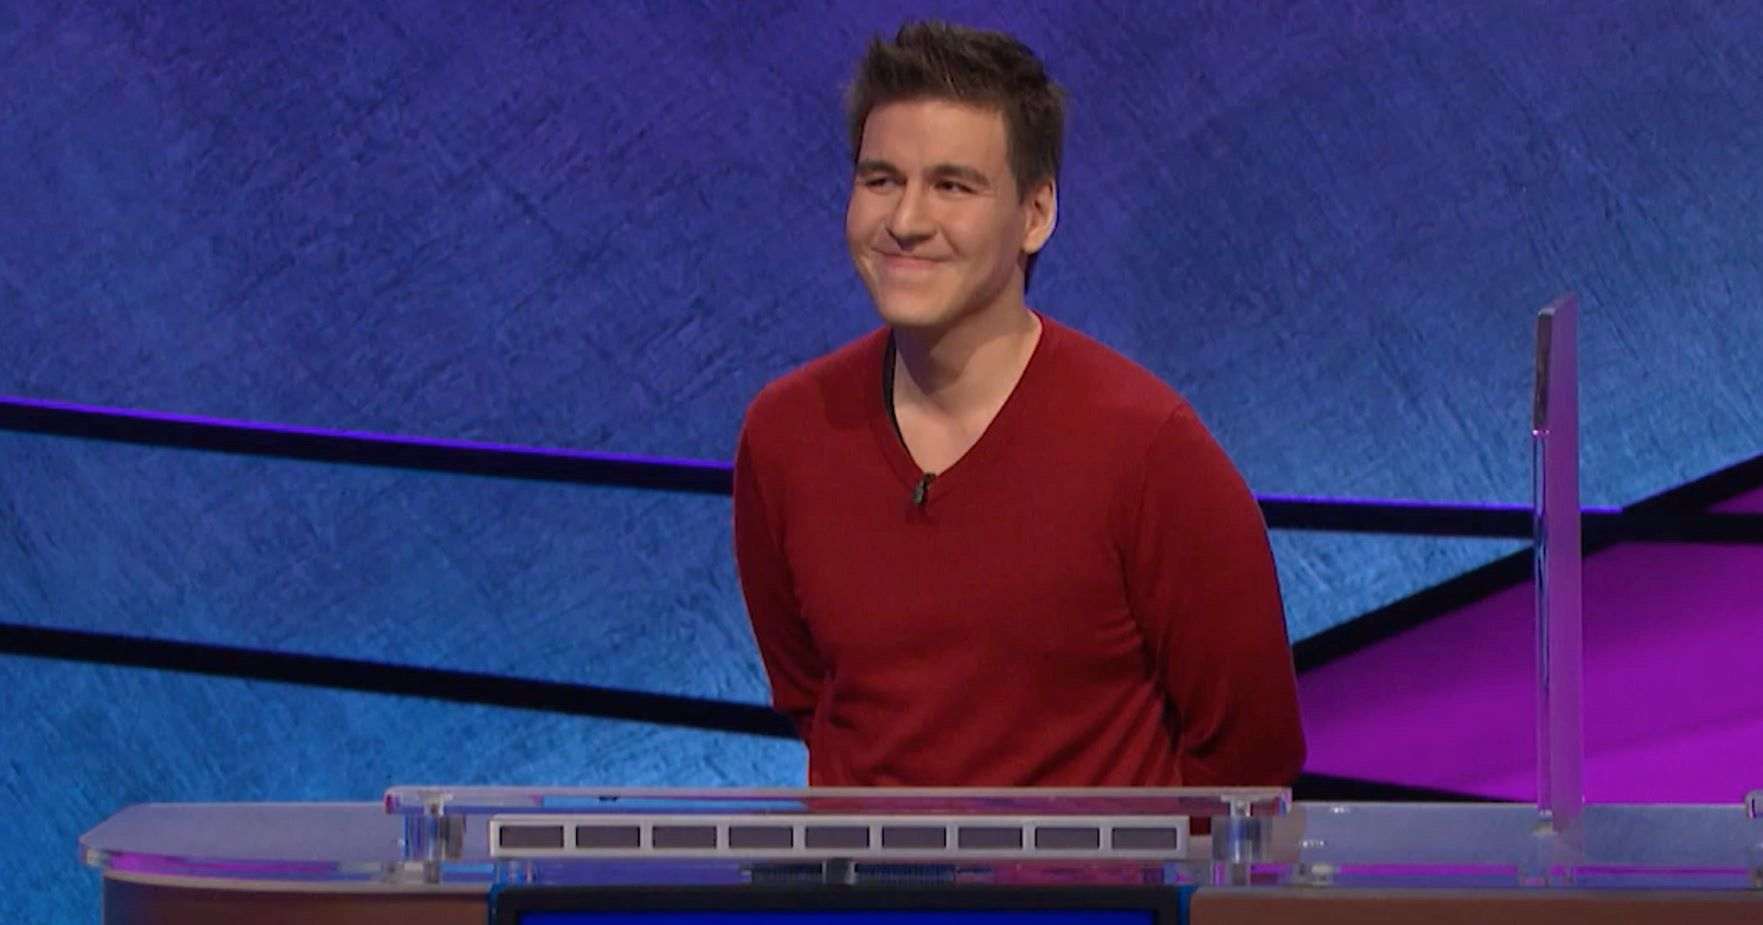 Jeopardy Contestant Shatters His Own Record With